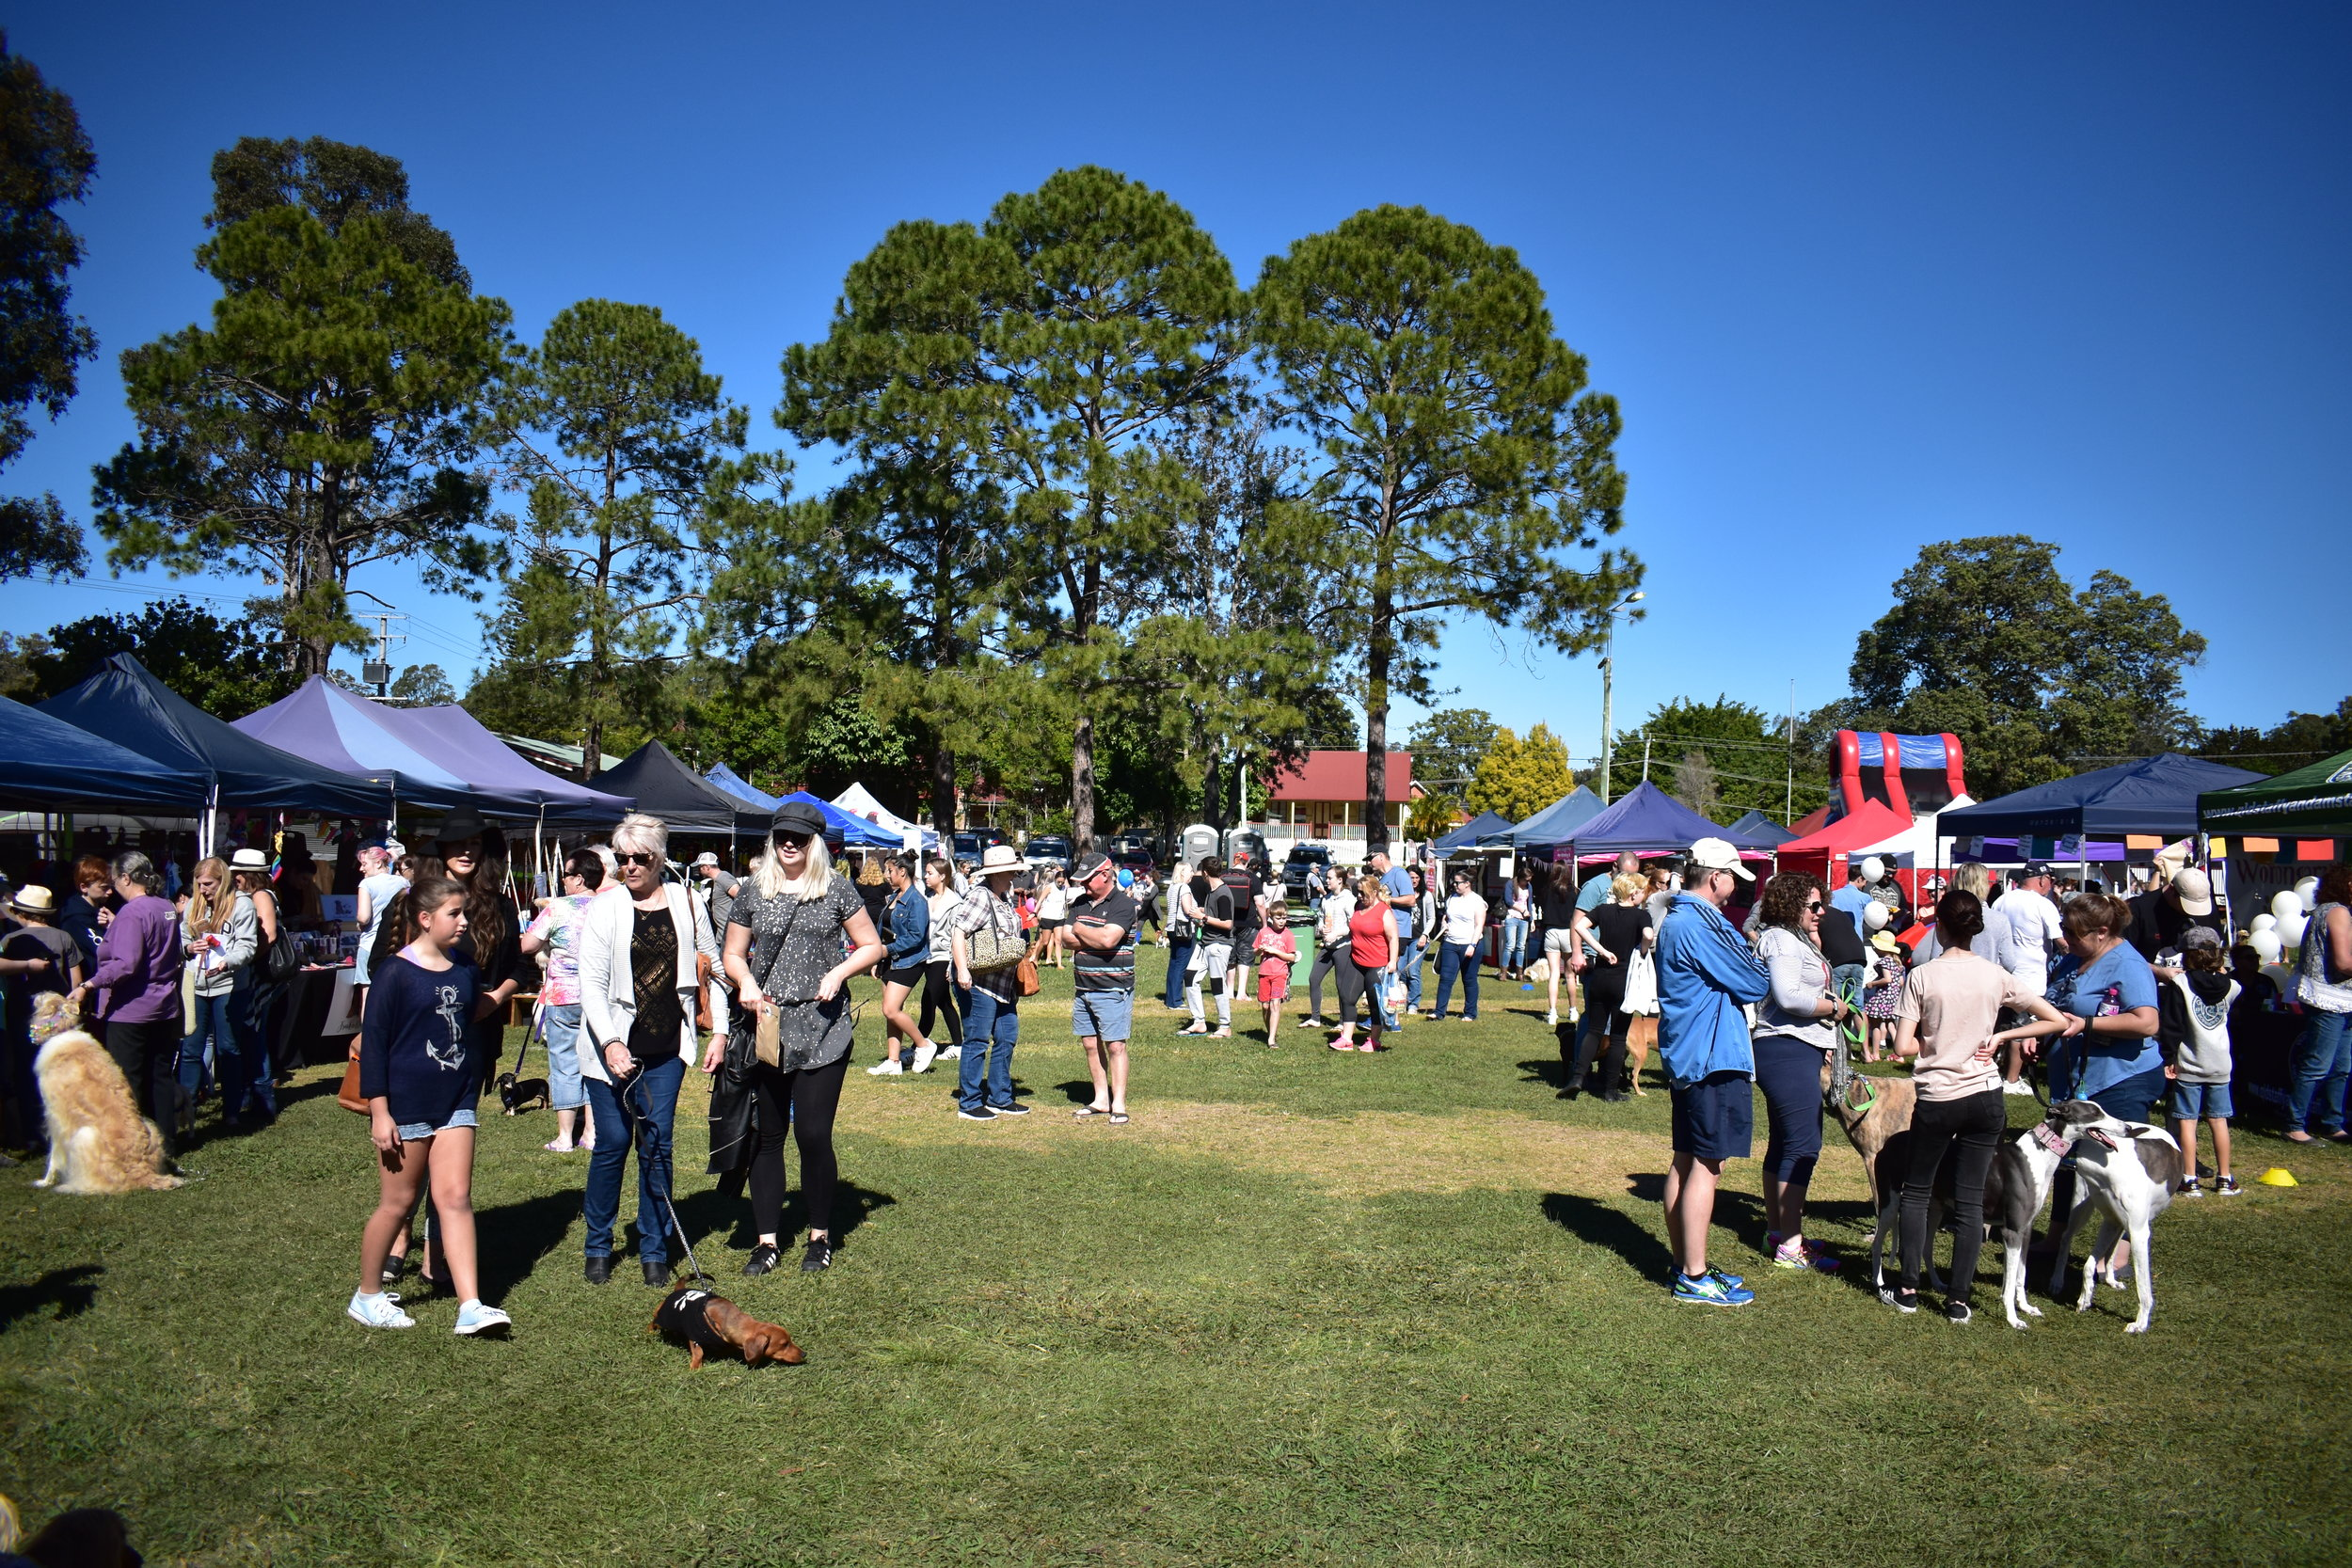 dogs on the green grass of mudgeeraba showgrounds